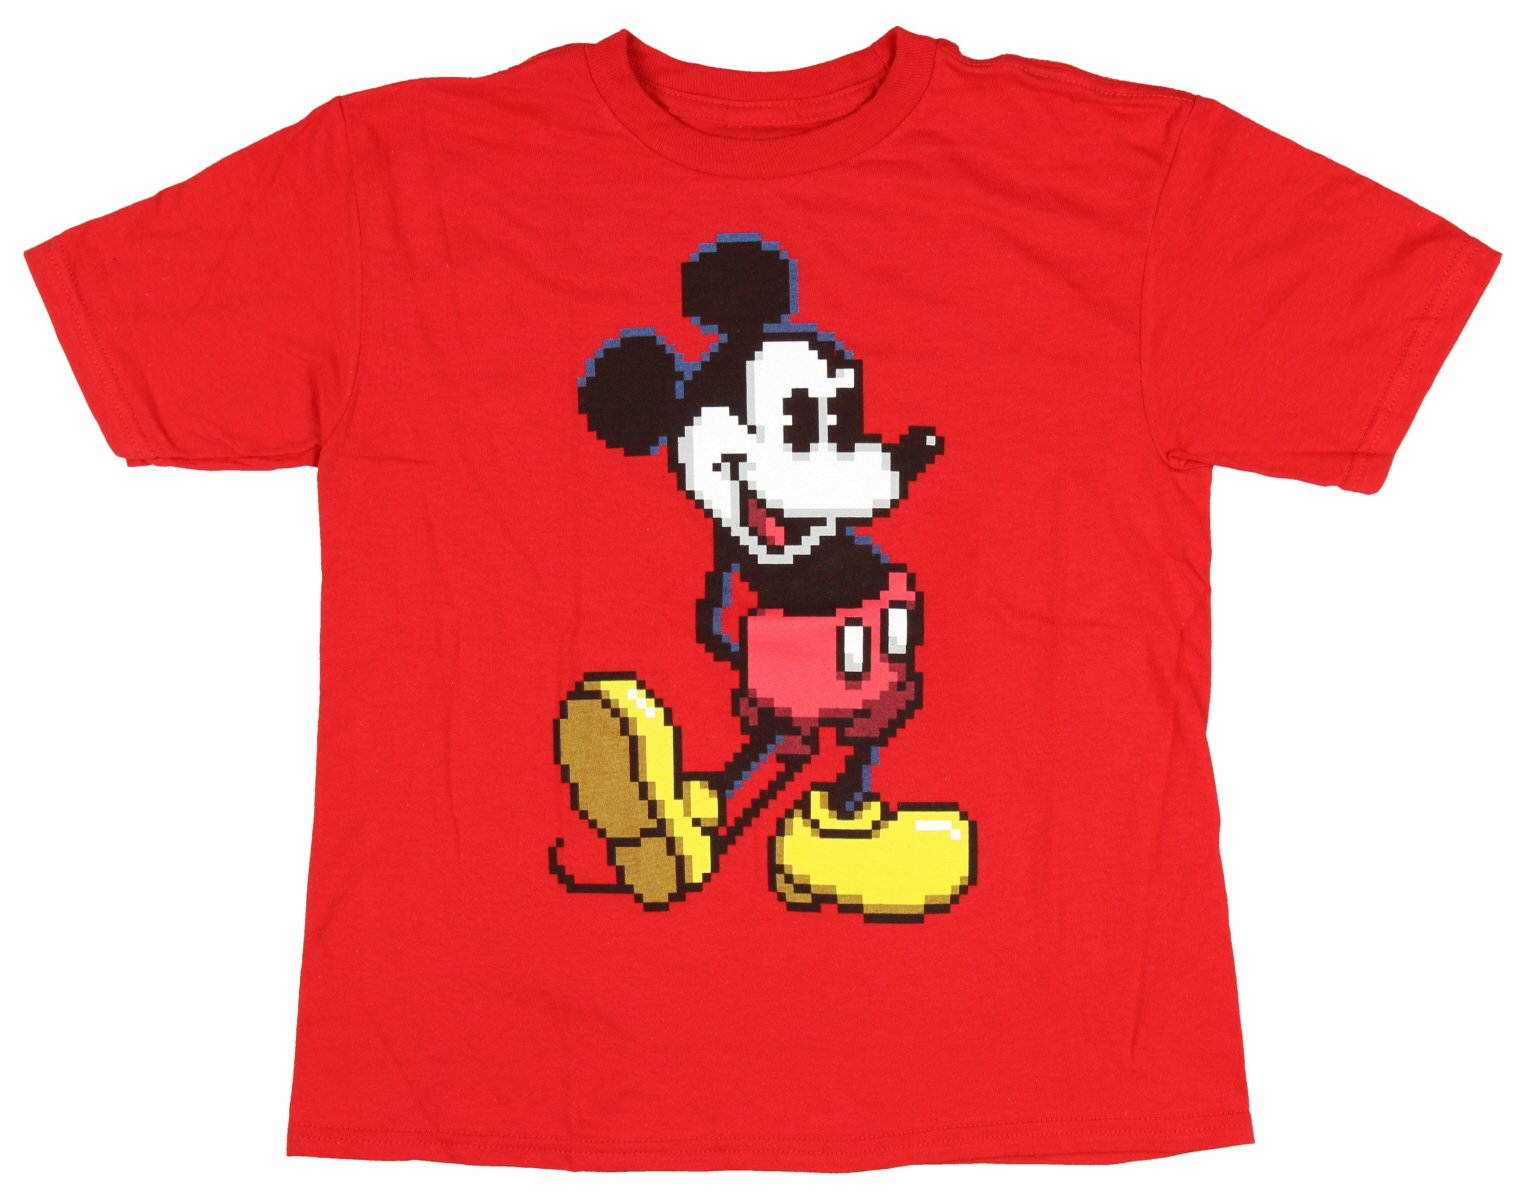 Disney Mickey Mouse Retro Style Pixel Boys Graphic Tee (Large)